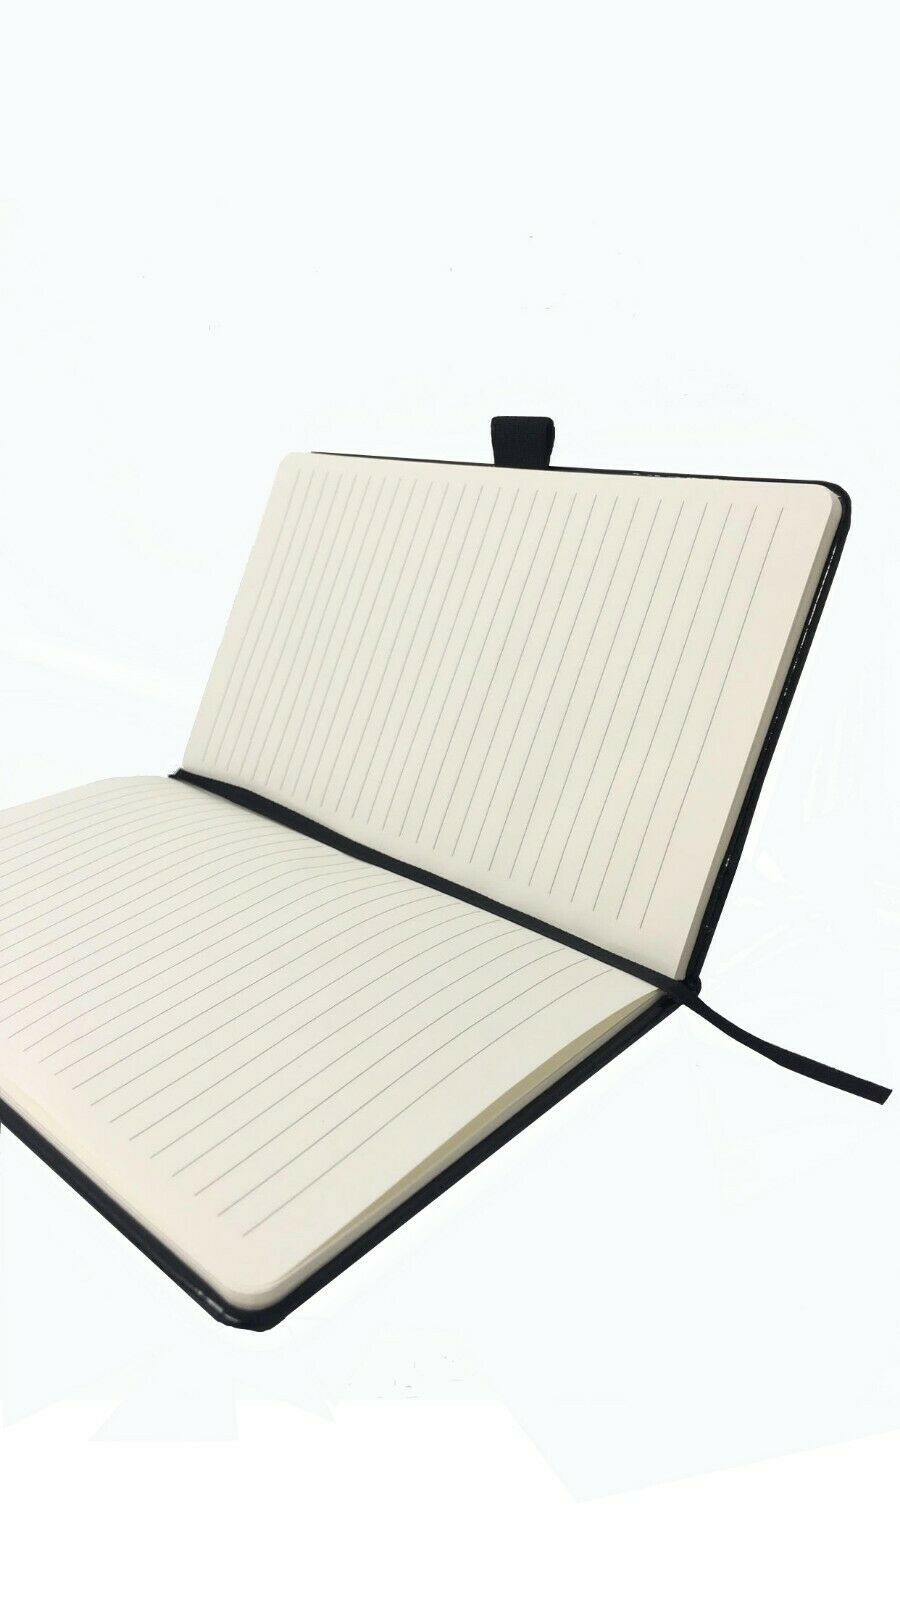 Scratch Free Notebooks for Office, School-Vibrant Color Stylish Journal Planner Appealing and Fashionable-Great Work, Gift. Writer.